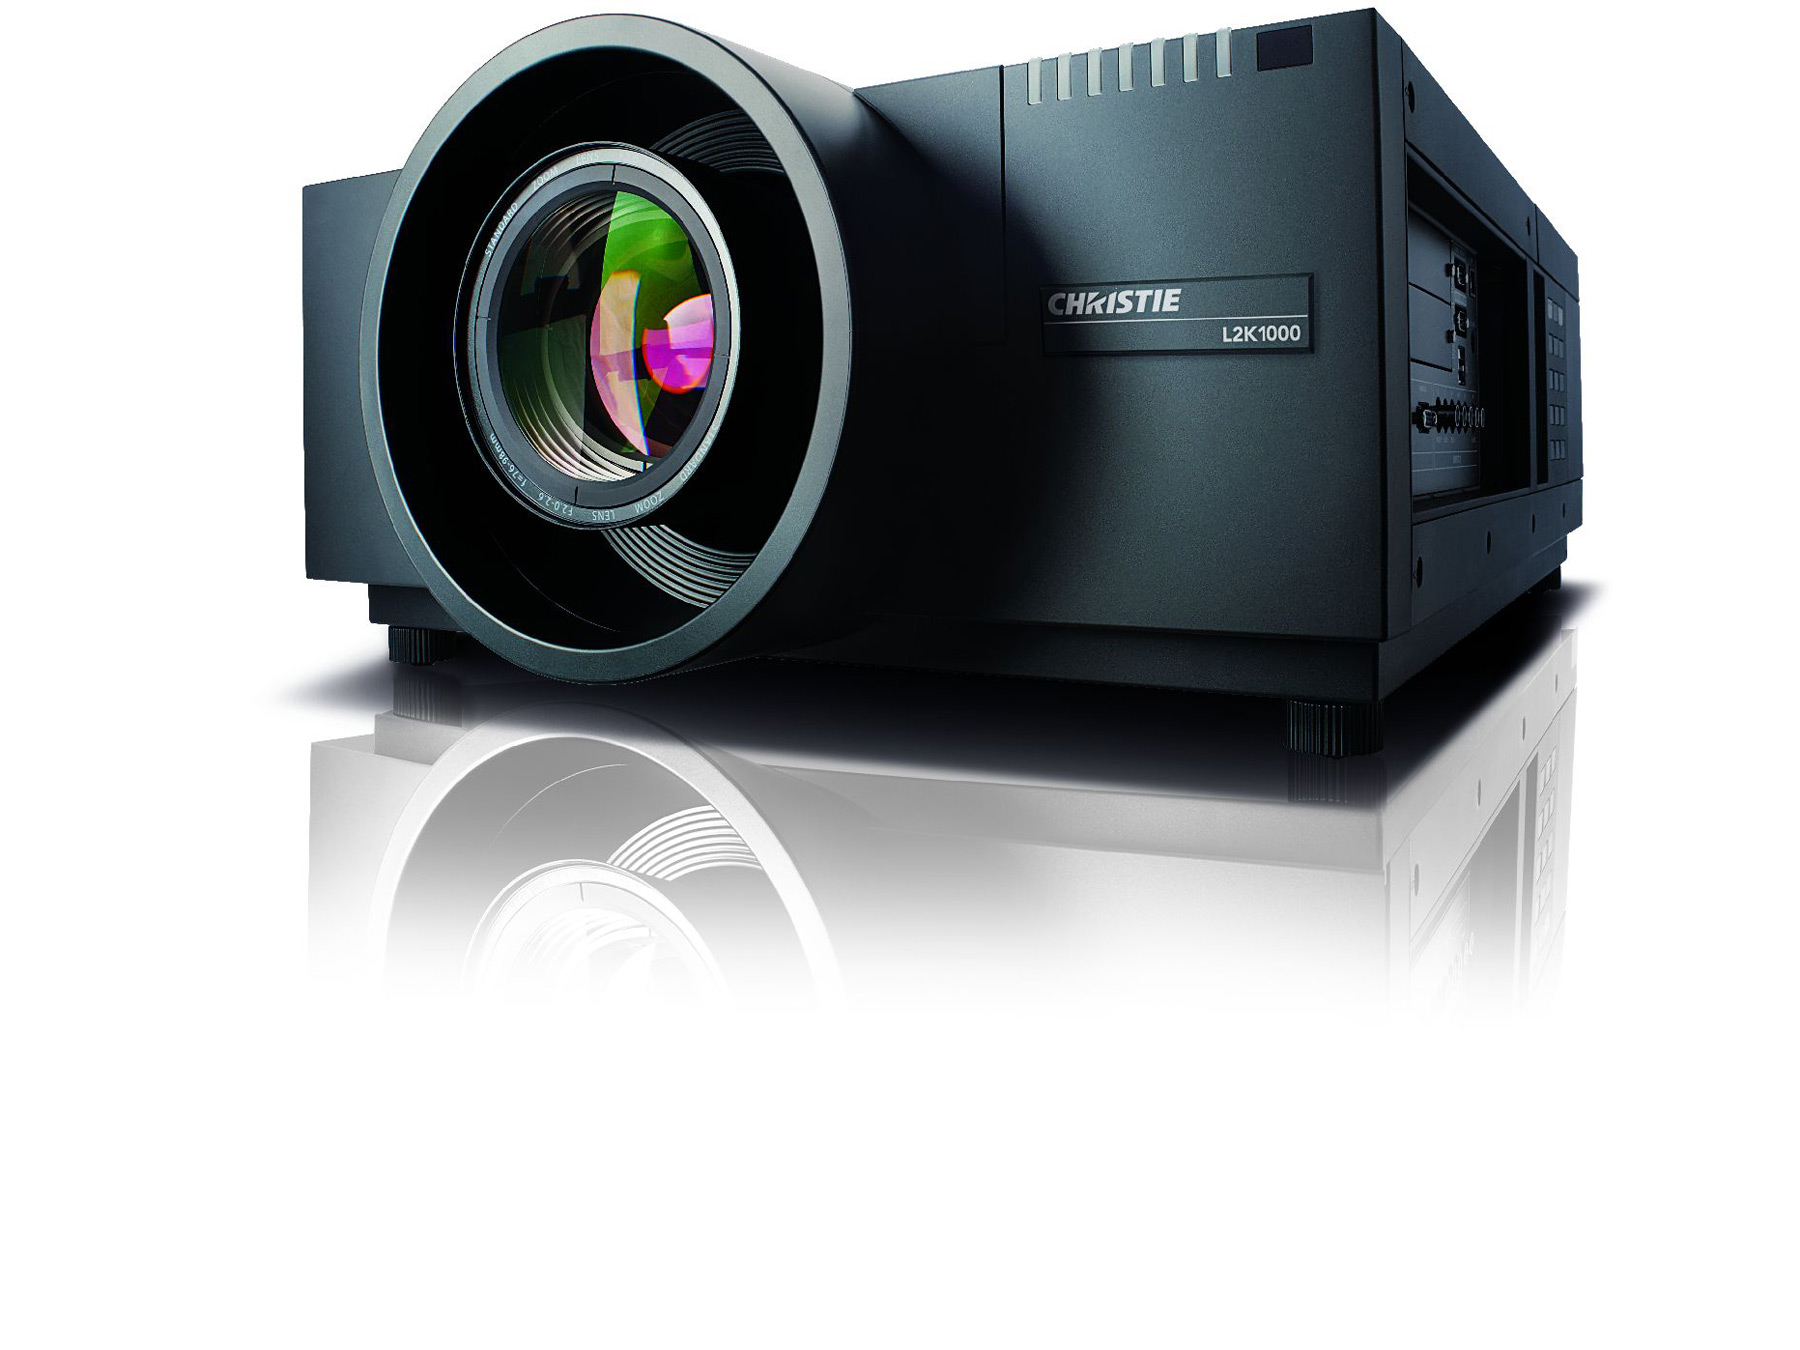 /globalassets/.catalog/products/images/christie-l2k1000/gallery/christie-l2k-1000-3-lcd-digital-projector-image-13.jpg